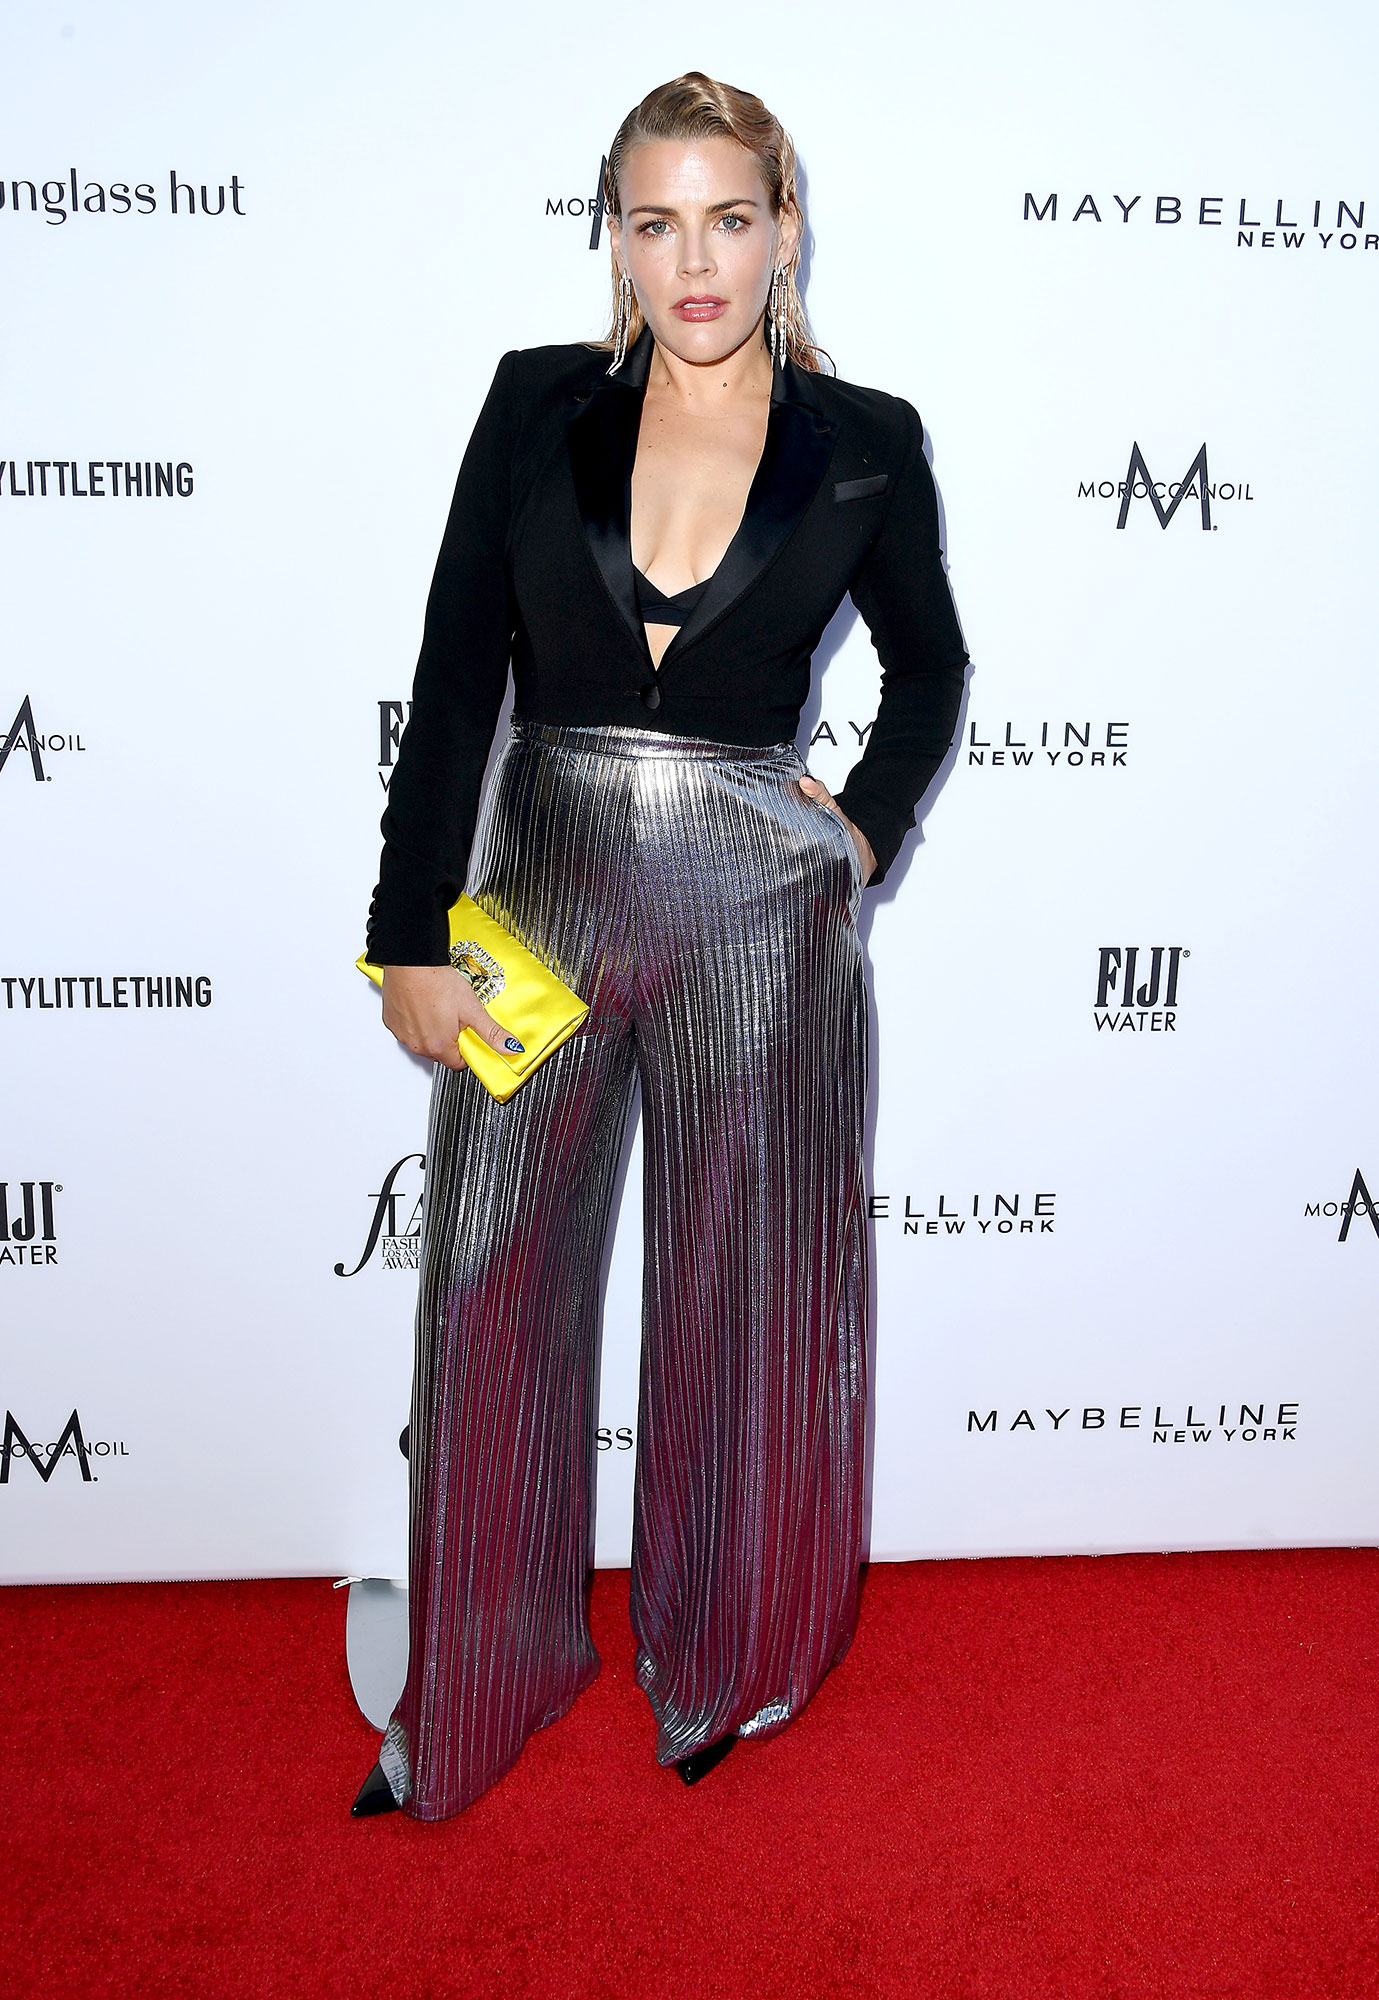 Stars Brought Their Style A-Game to the Daily Front Row Fashion Awards - The late night host attended the awards show in a jumpsuit with sparkly silver pant legs and a tuxedo jacket top.